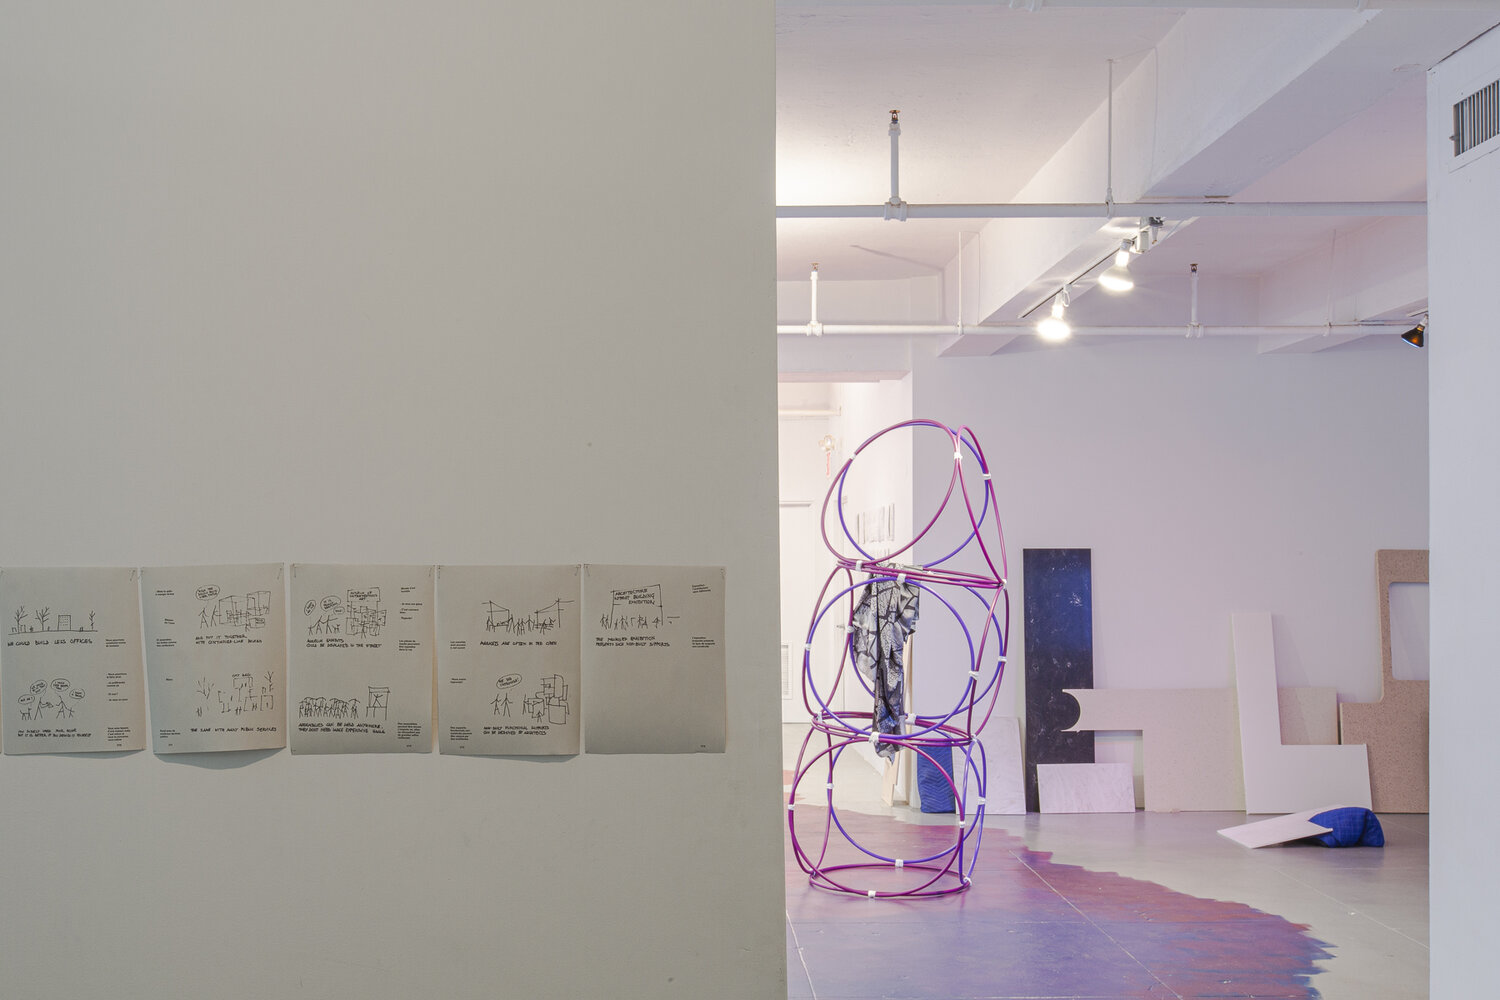 Yona Friedman,  Slideshow (Improvisation in Architect, Build Less, Critical Groupsize, Improvise, Architecture Without Building) , laser print on paper, dimensions vary, 2019.  Yona Friedman,  Museum Without Building , Hula hoops and white tape, dimensions vary, 2019.  Laetitia Badaut Haussman,  The Silk Prints , 4 Posters, Inkjet on Silk, 55 x 67 in. each, 2019.  Theodora Barat,  Natural Acrylic Stones , engineered stones, projected film, approx. 12 x 8 ft, 2019.   Flora Moscovici,  Hula hoop Chack Chack , latex paint on floor, approx. 25 x 40 ft., 2019.